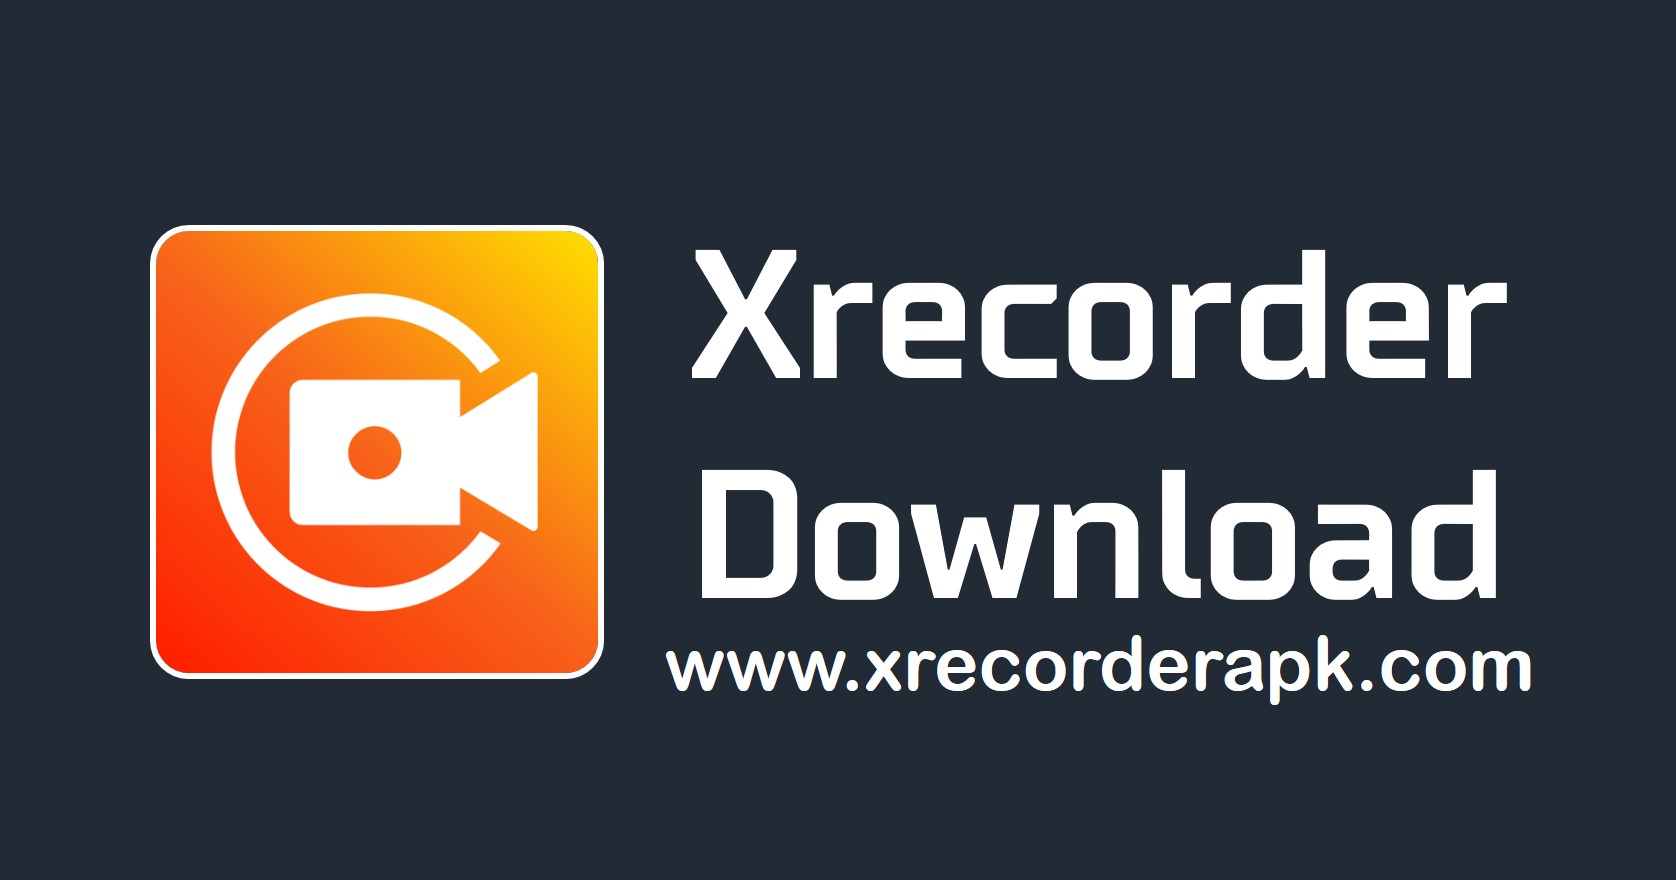 xrecorder download